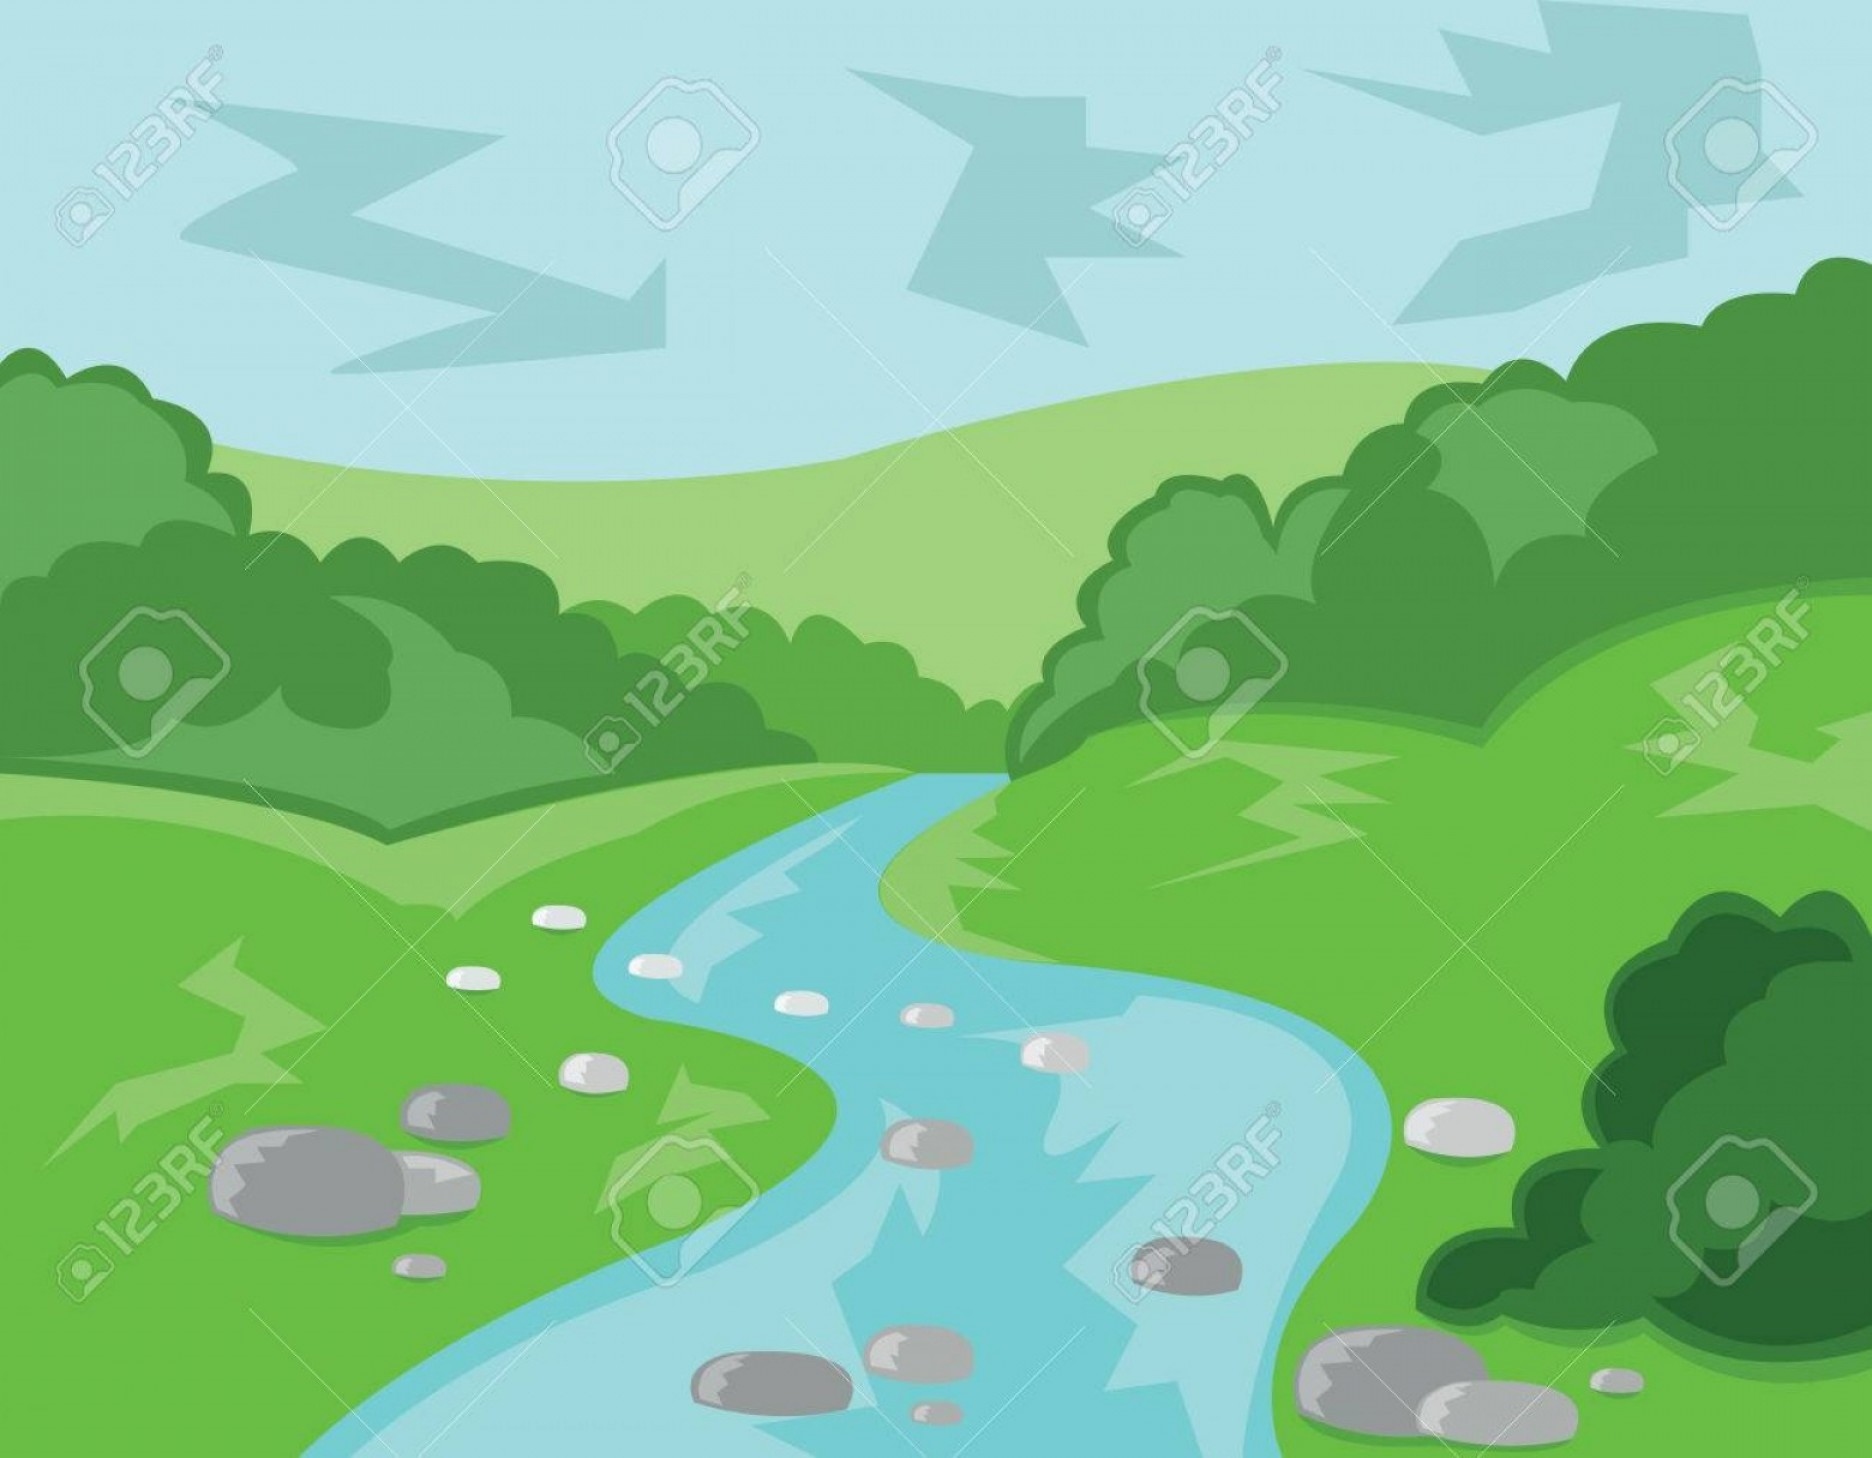 Hollywood Hills Vector: Free Vector Clip Art Of House With Stream